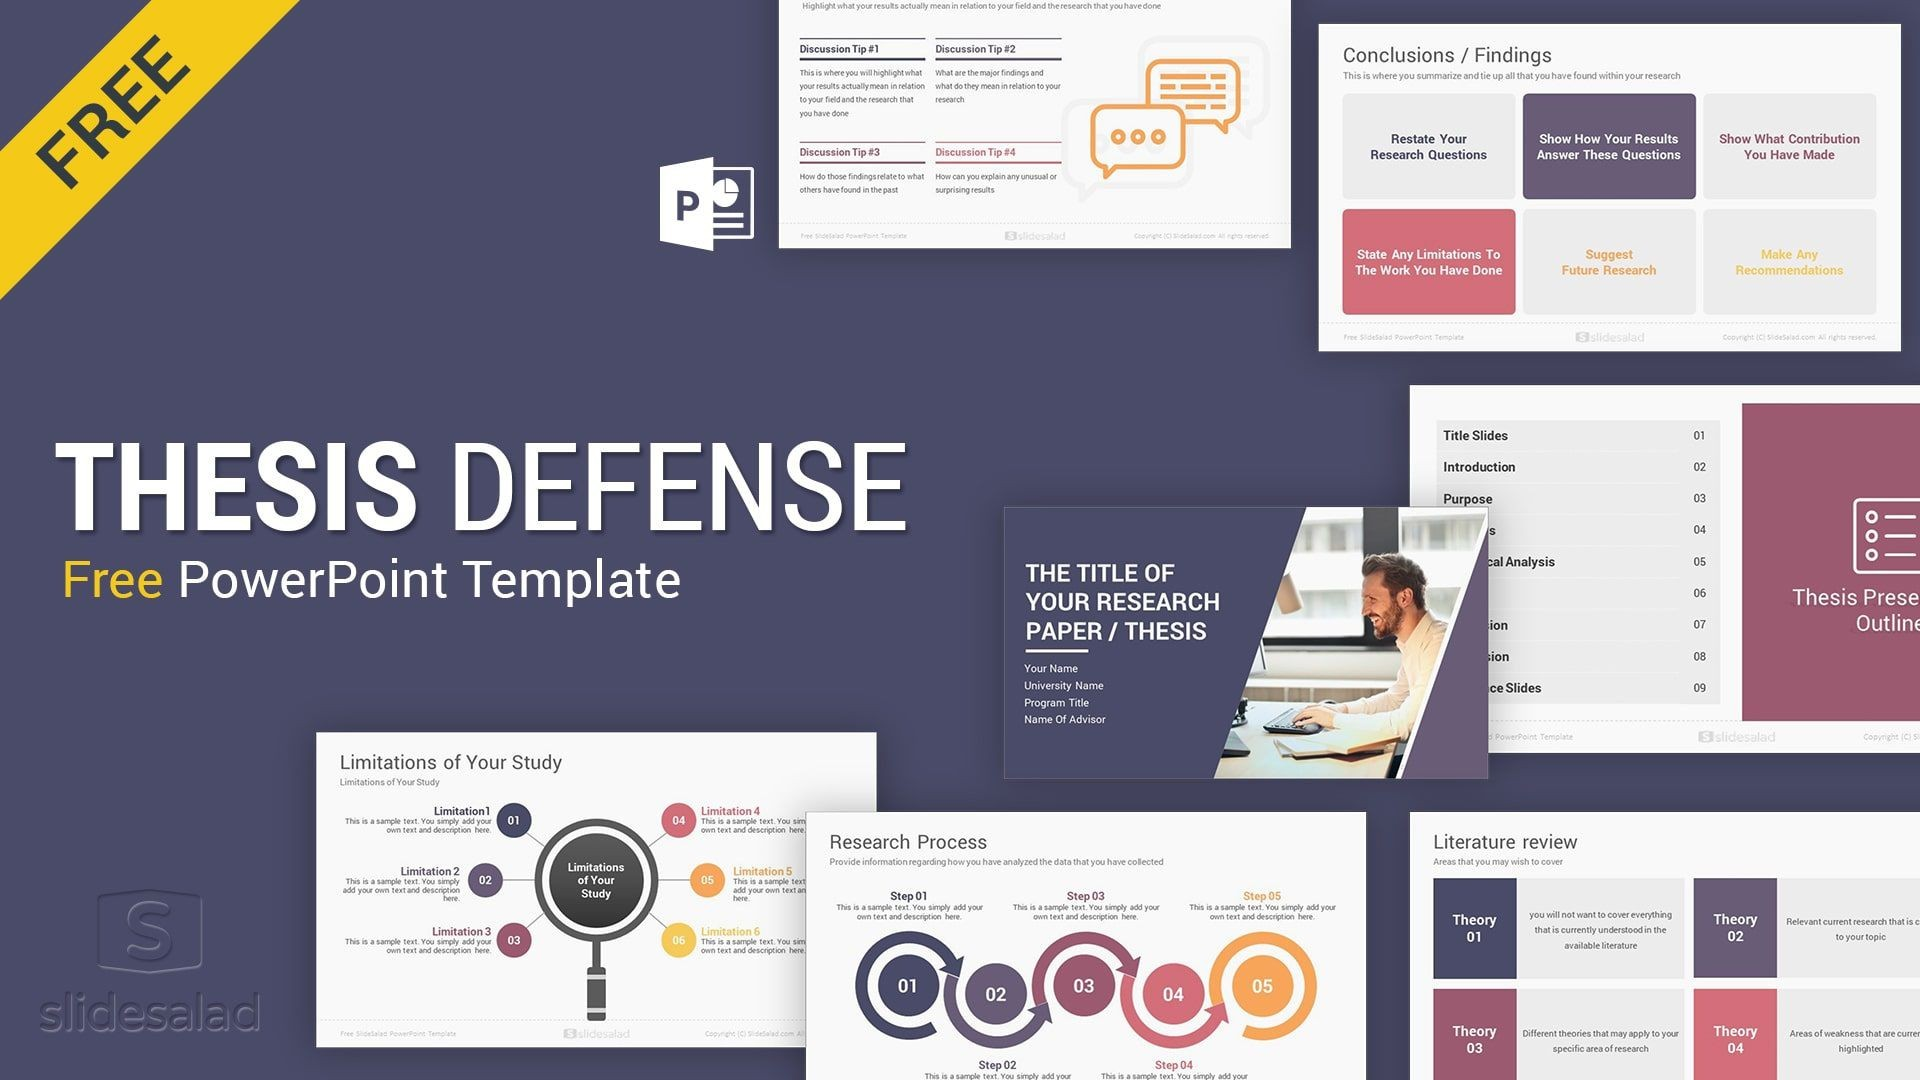 009 Dreaded Free Powerpoint Template Design Concept  For Student Food Busines1920